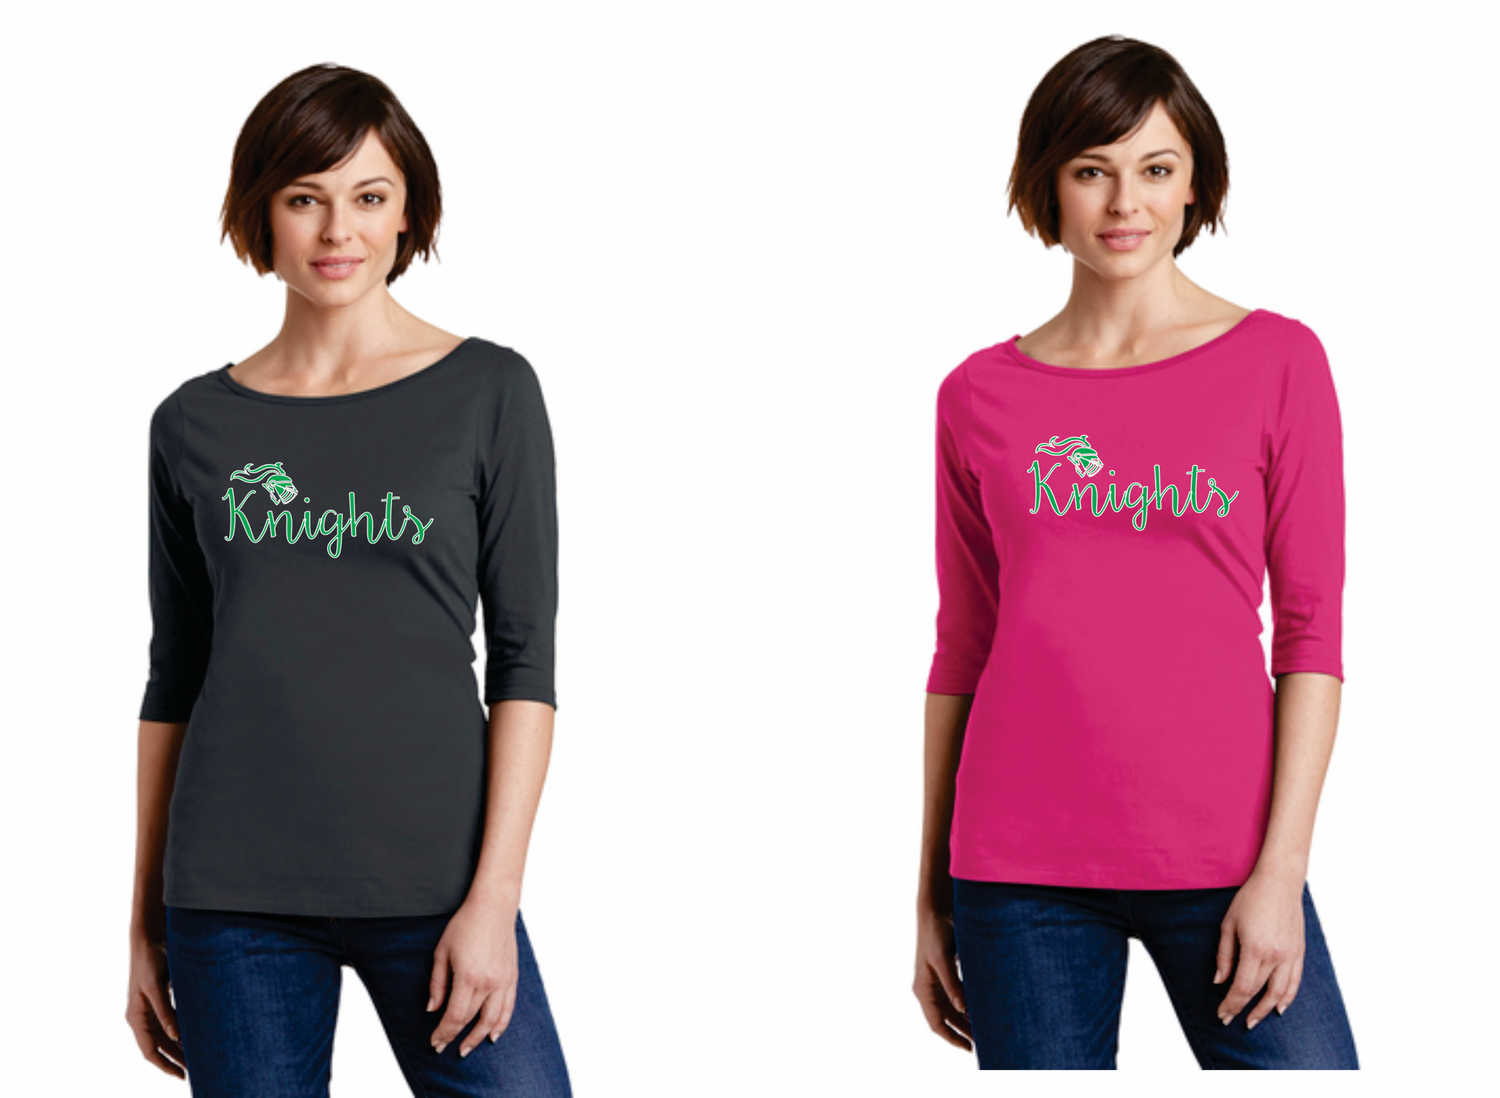 Ladies Knights Scoop Neck Shirt in Hot Pink and Charcoal-limited sizes remain